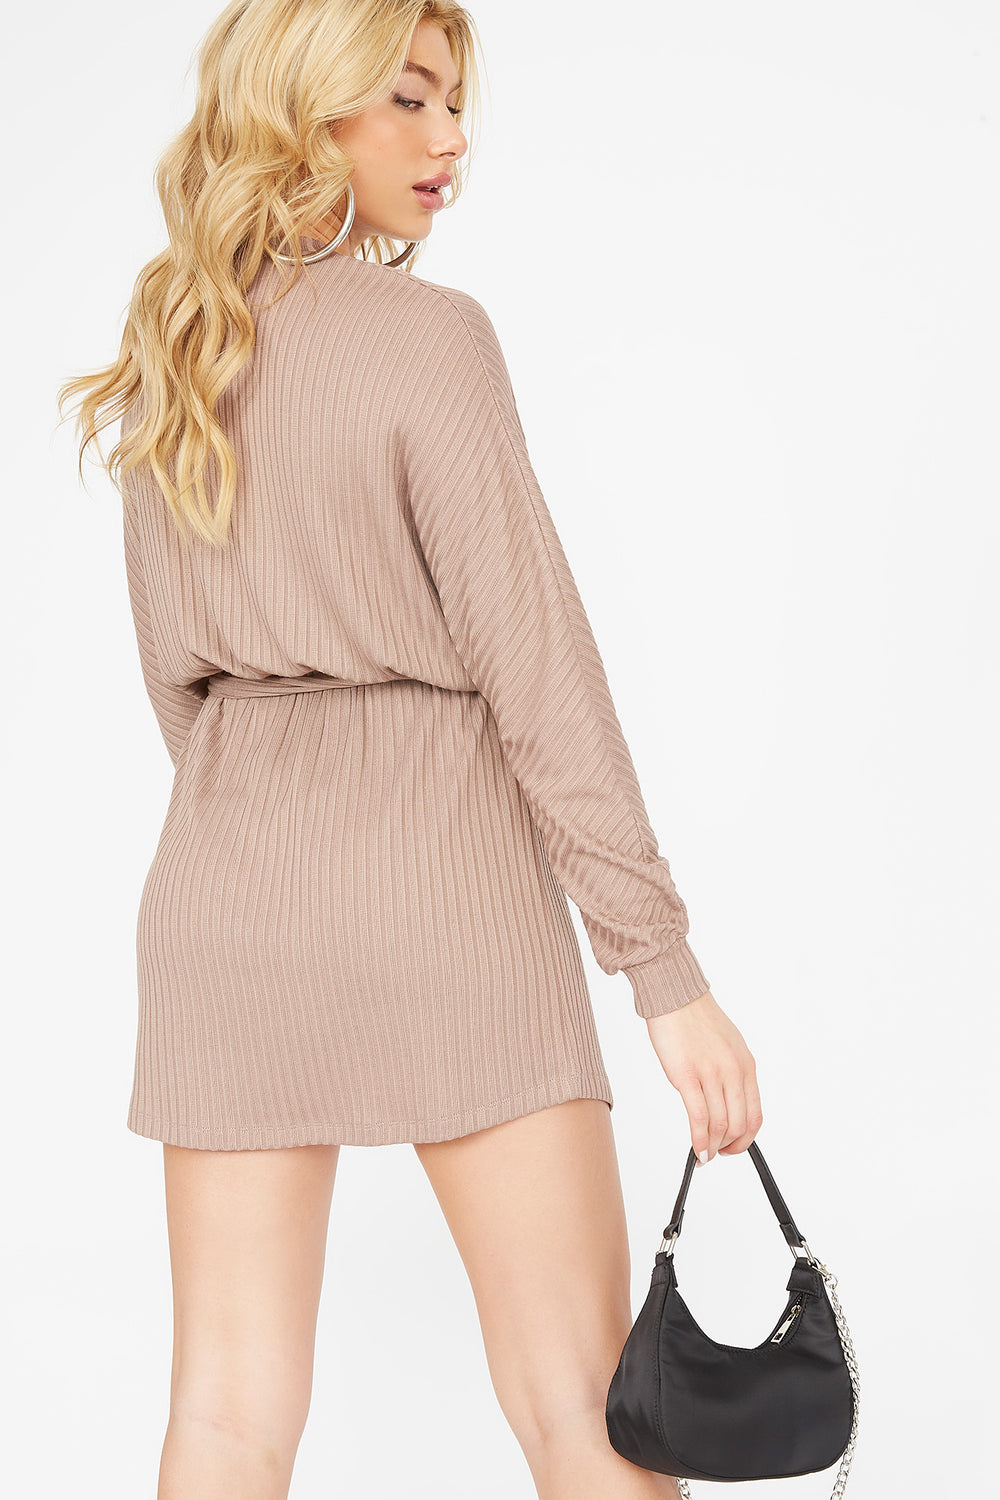 Ribbed Crew Neck Self Tie Belt Mini Dress Tan